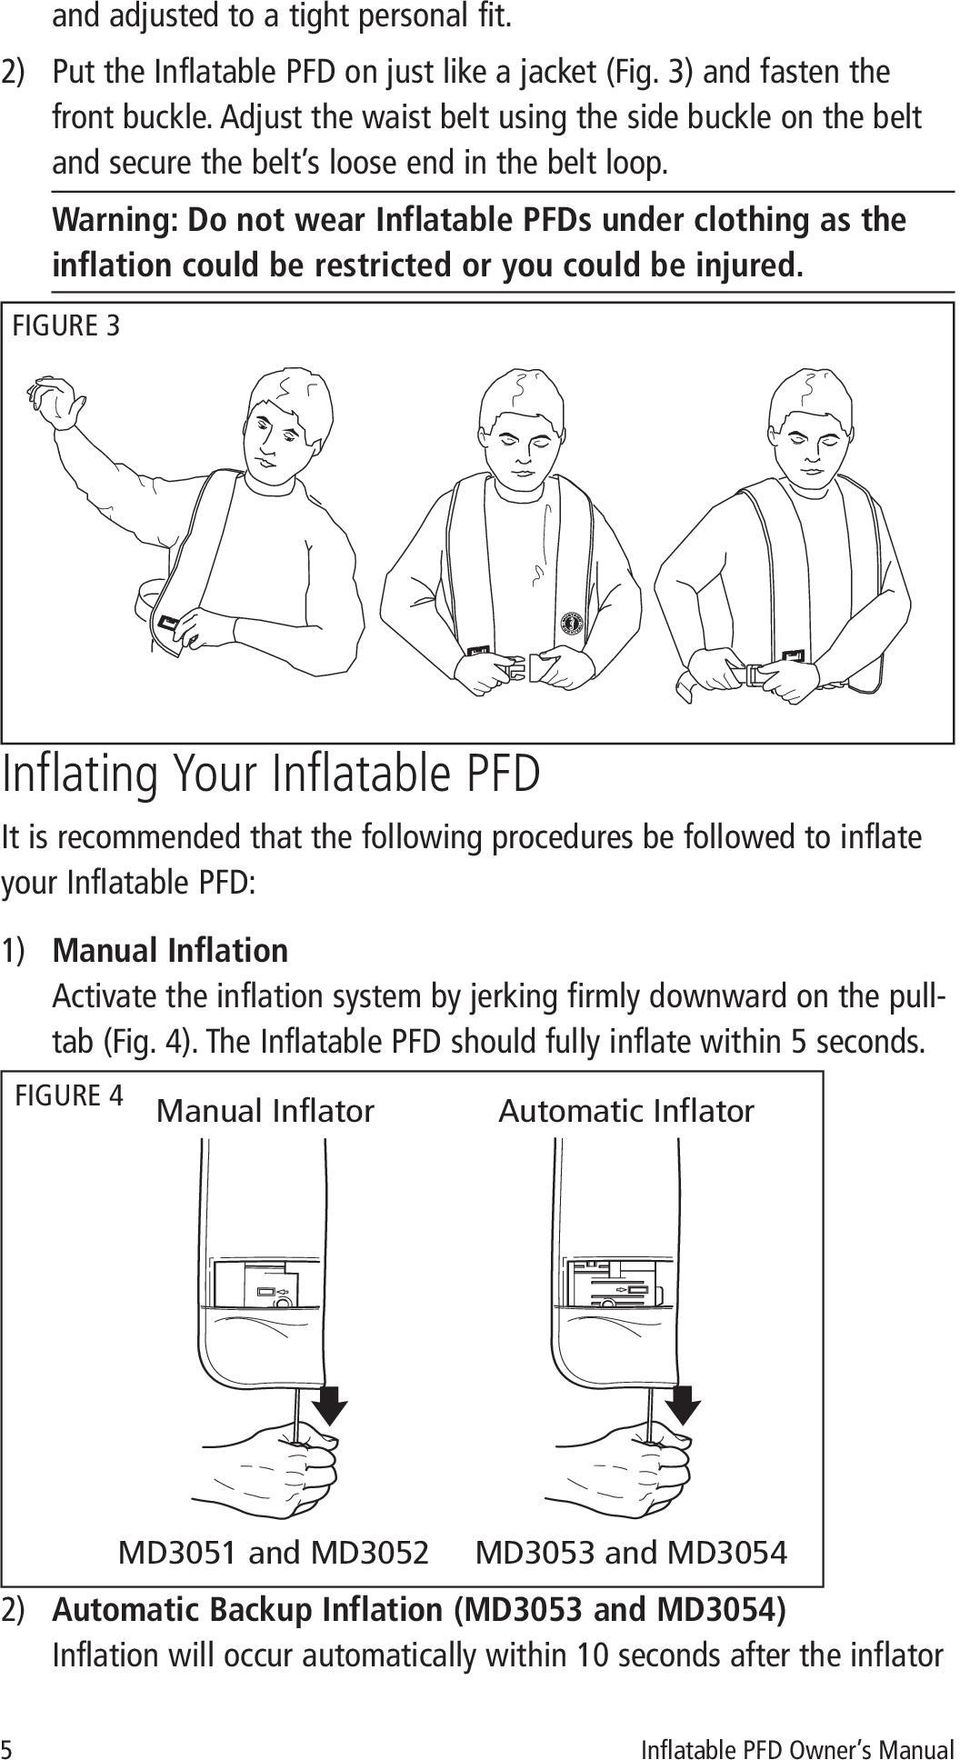 Warning: Do not wear Inflatable PFDs under clothing as the inflation could be restricted or you could be injured.